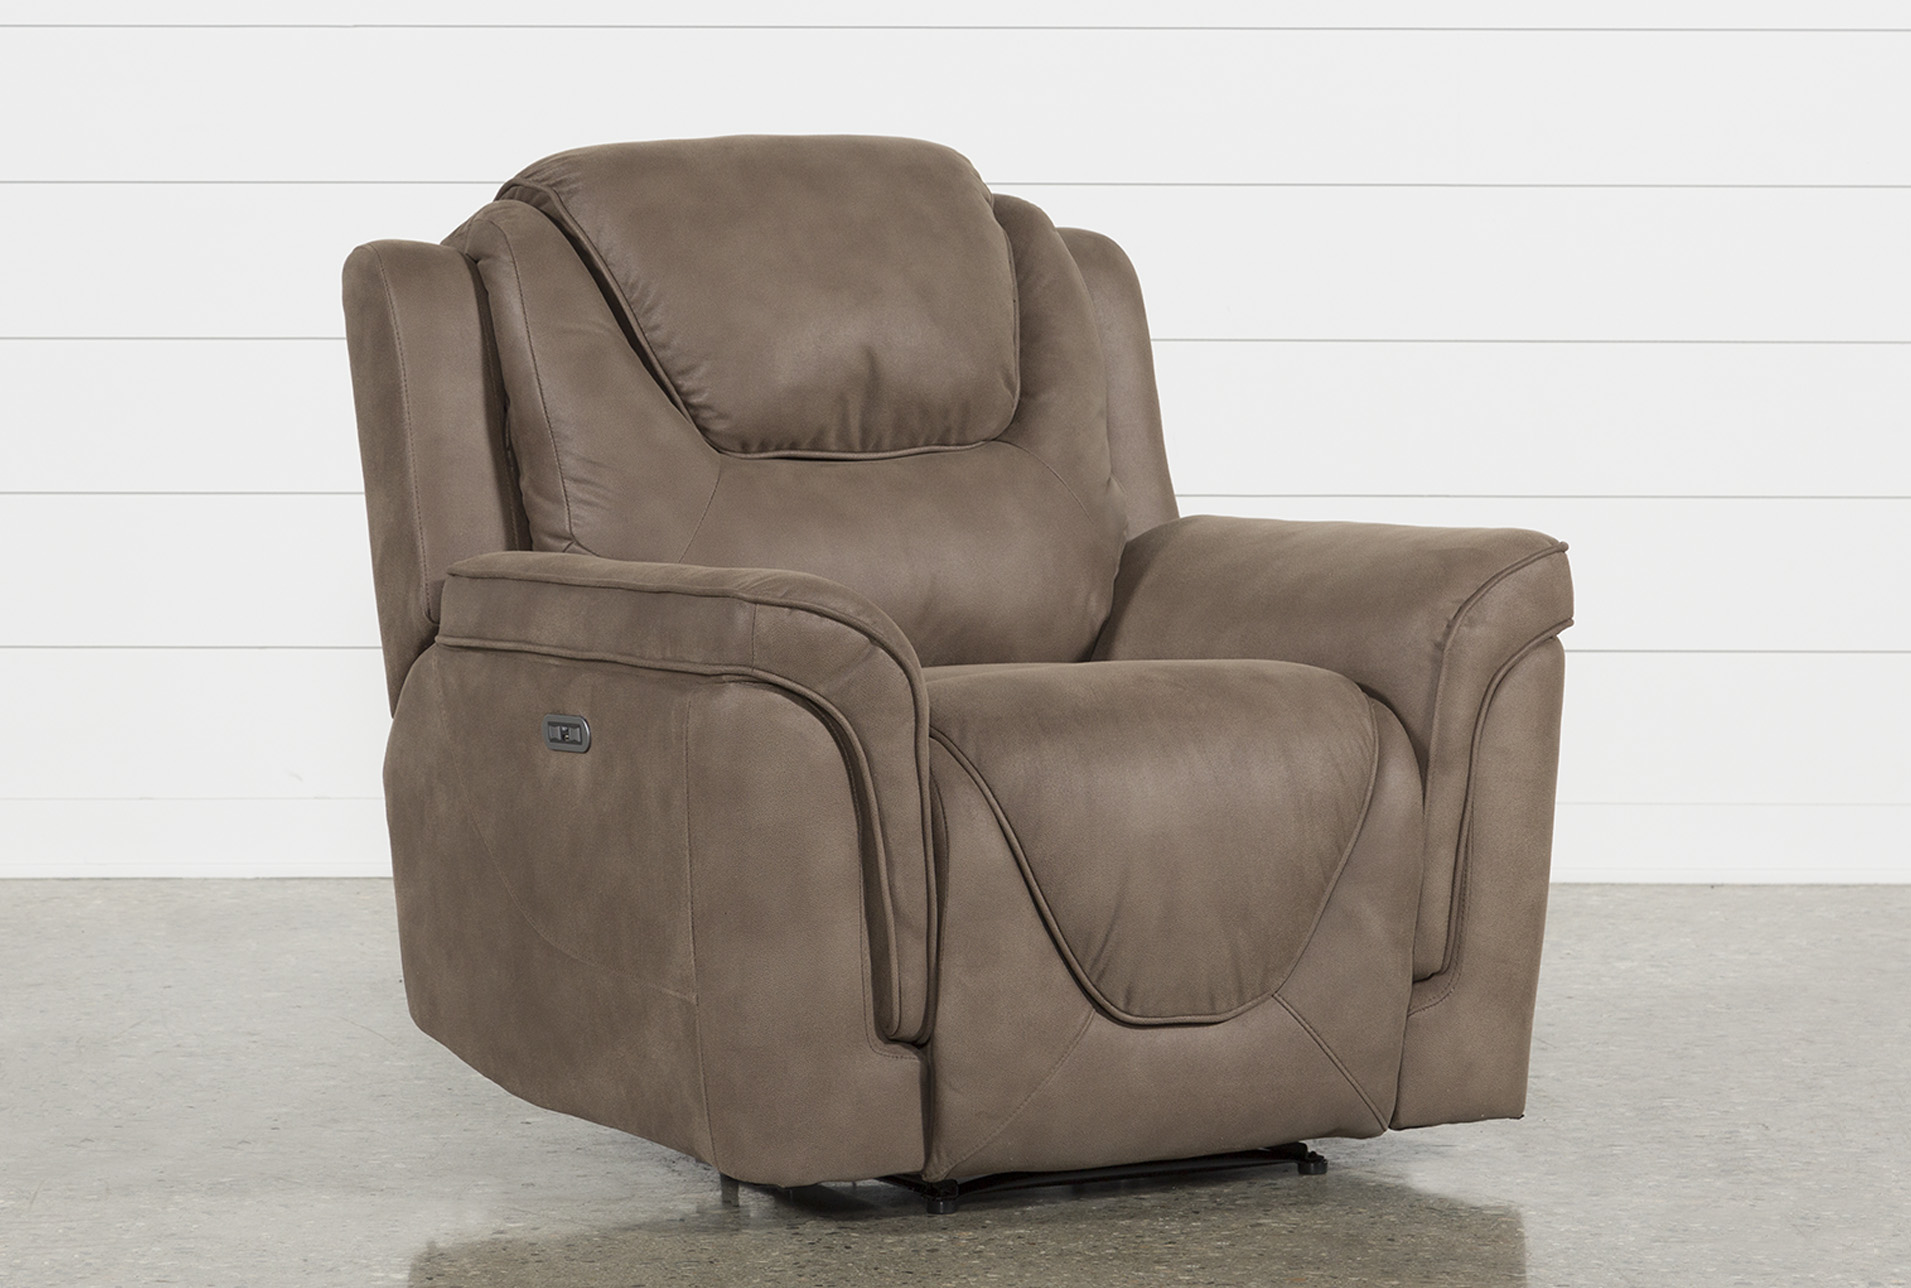 Charmant Denver Power Recliner With Power Headrest U0026 Usb